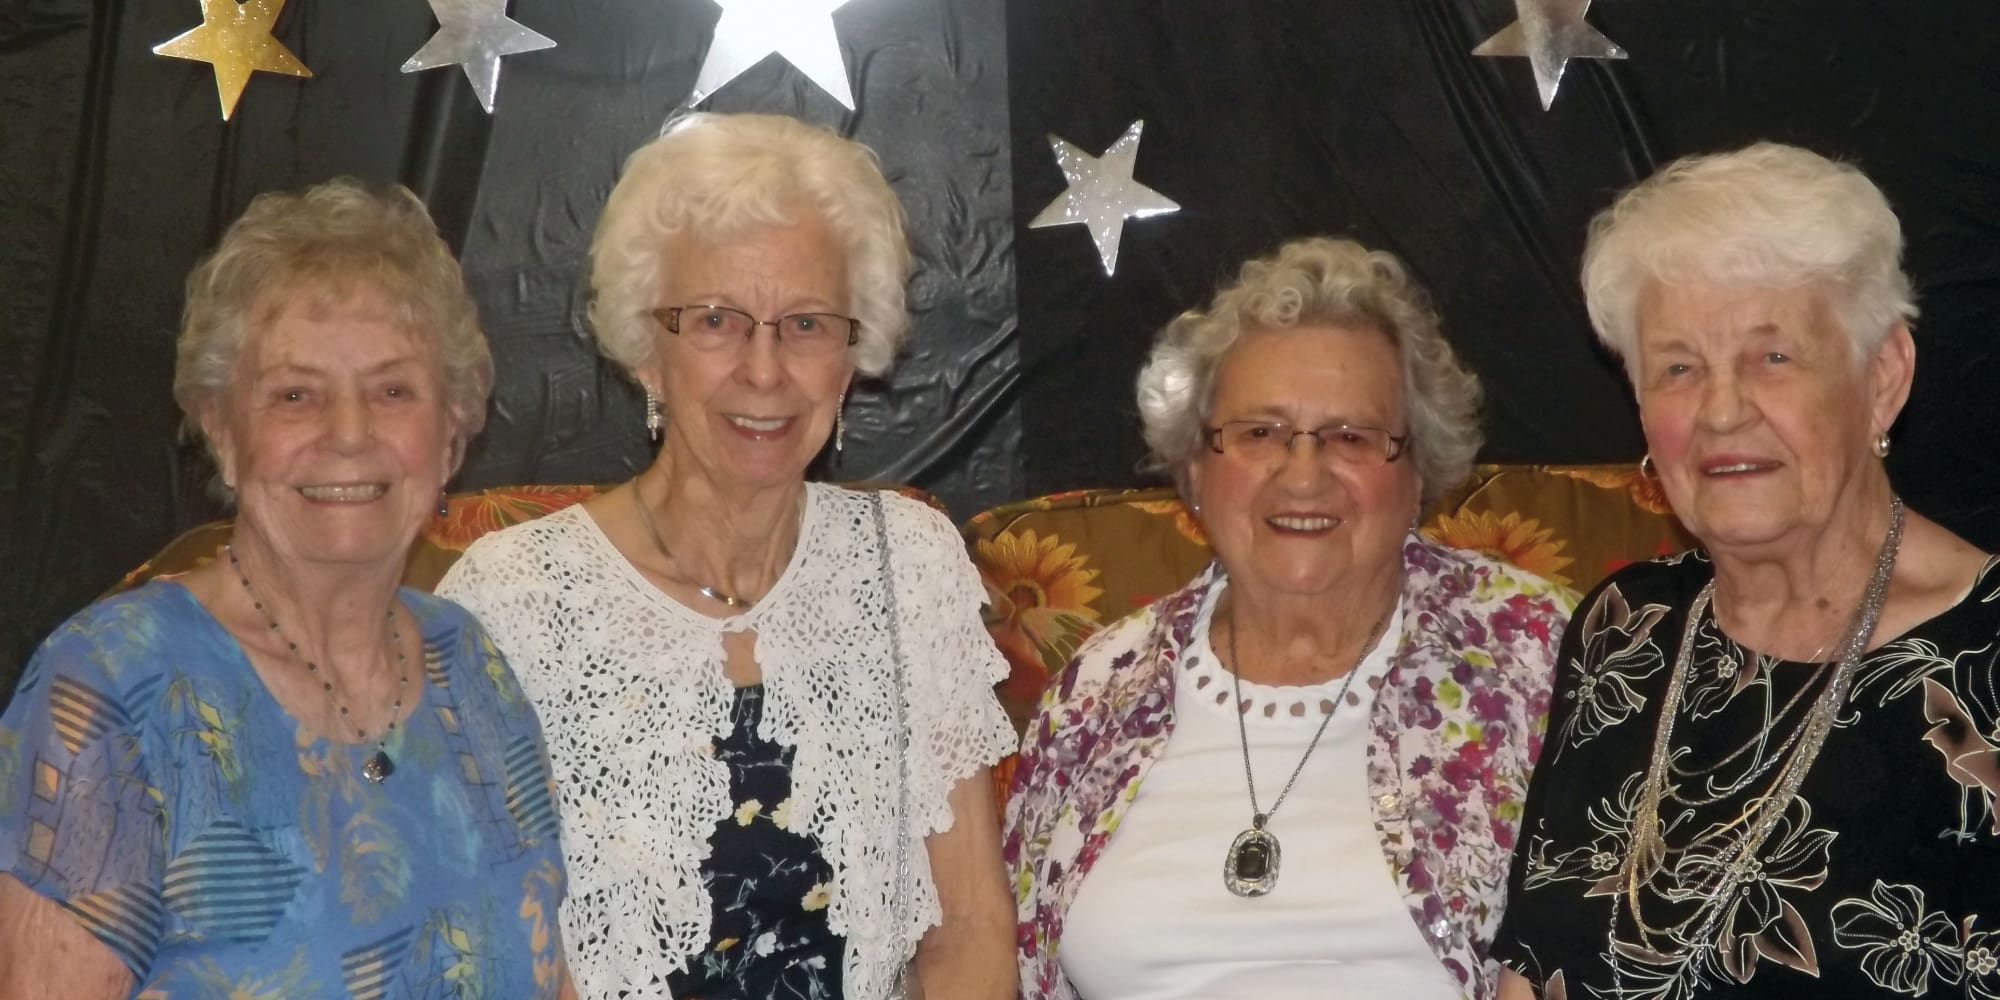 A group of residents in front of a backdrop at Summerville Estates Gracious Retirement Living in Summerville, South Carolina